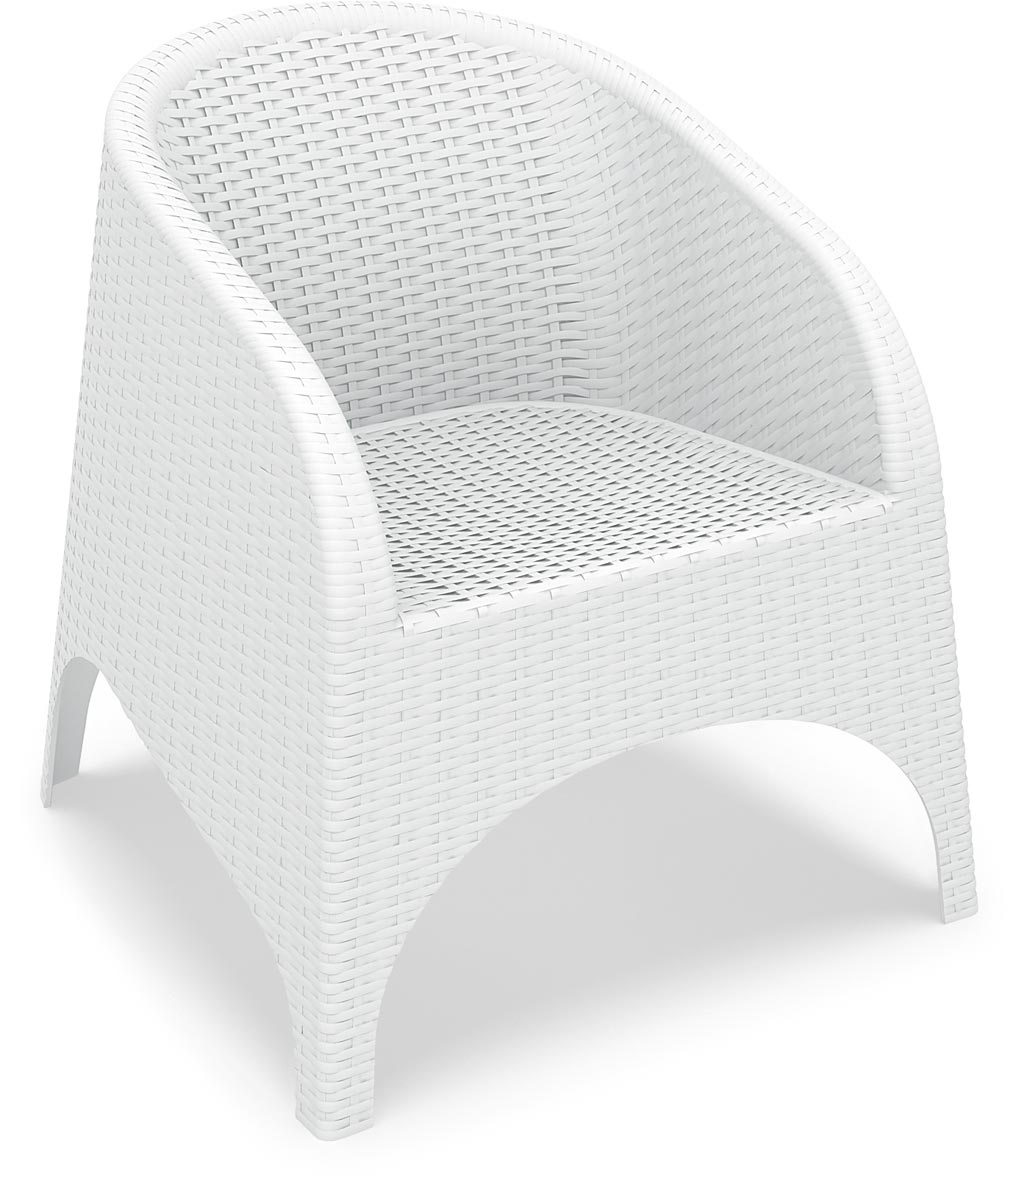 Aruba Chair in white